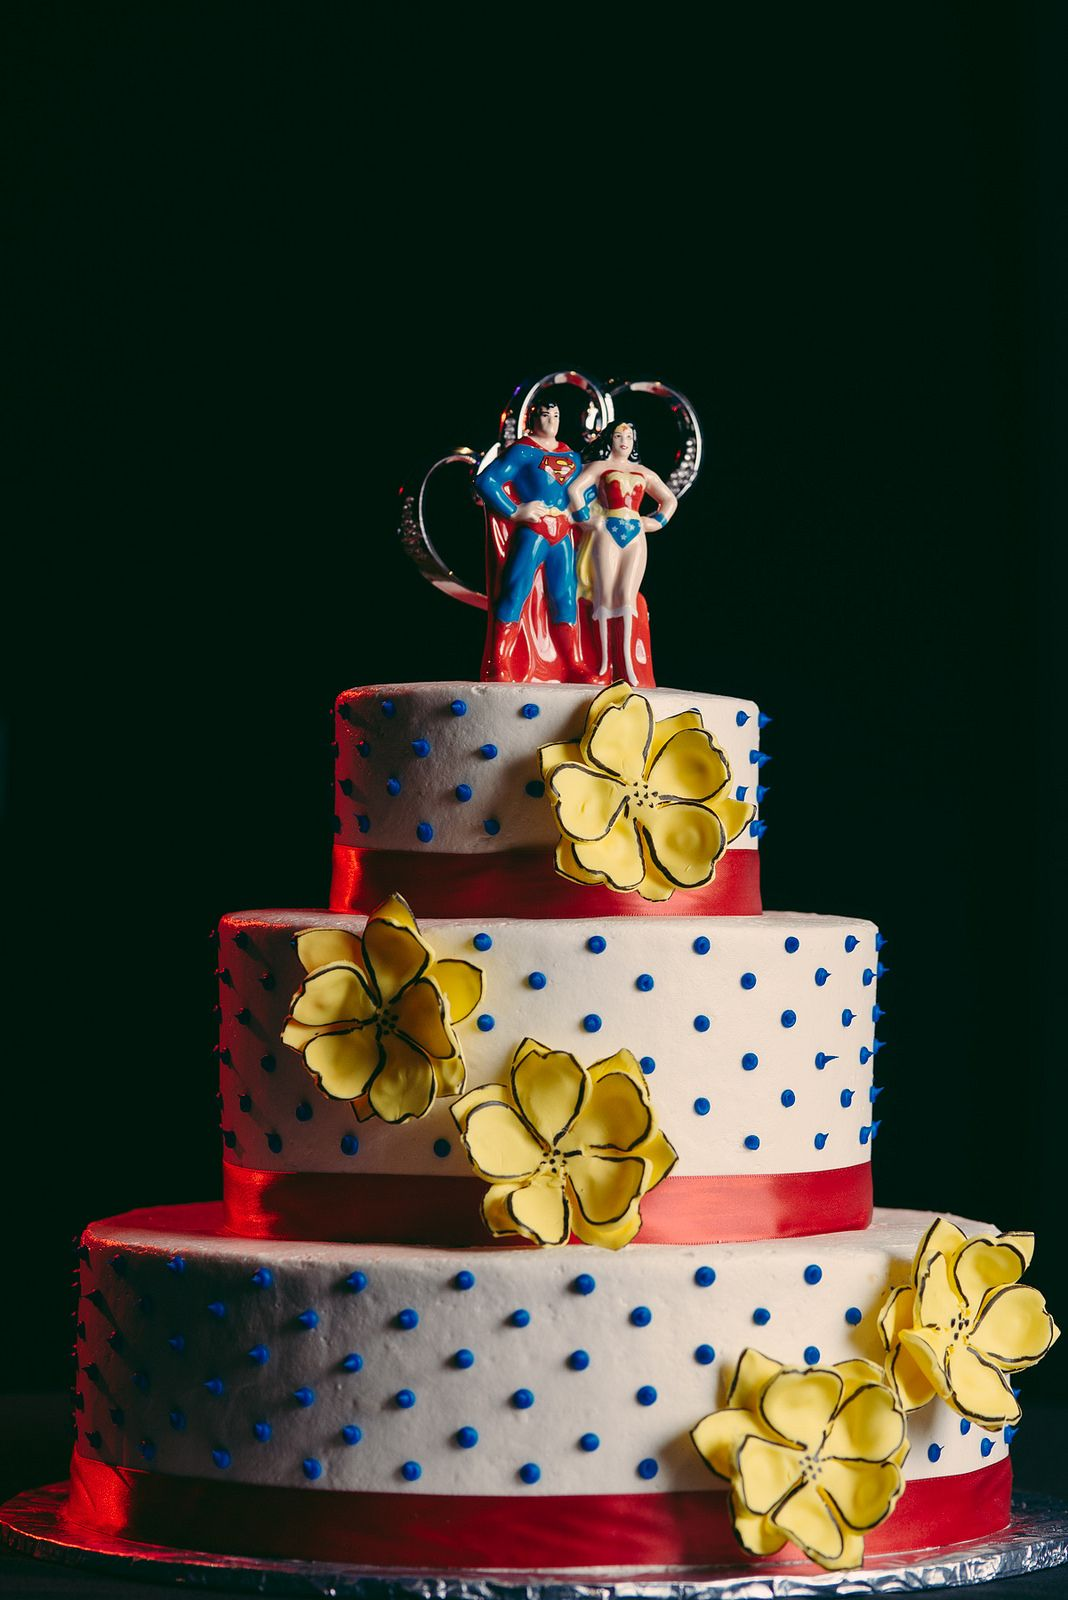 Danielle Robs Pinup Stylemeetscomic Books Wedding Wedding - Comic Book Wedding Cake